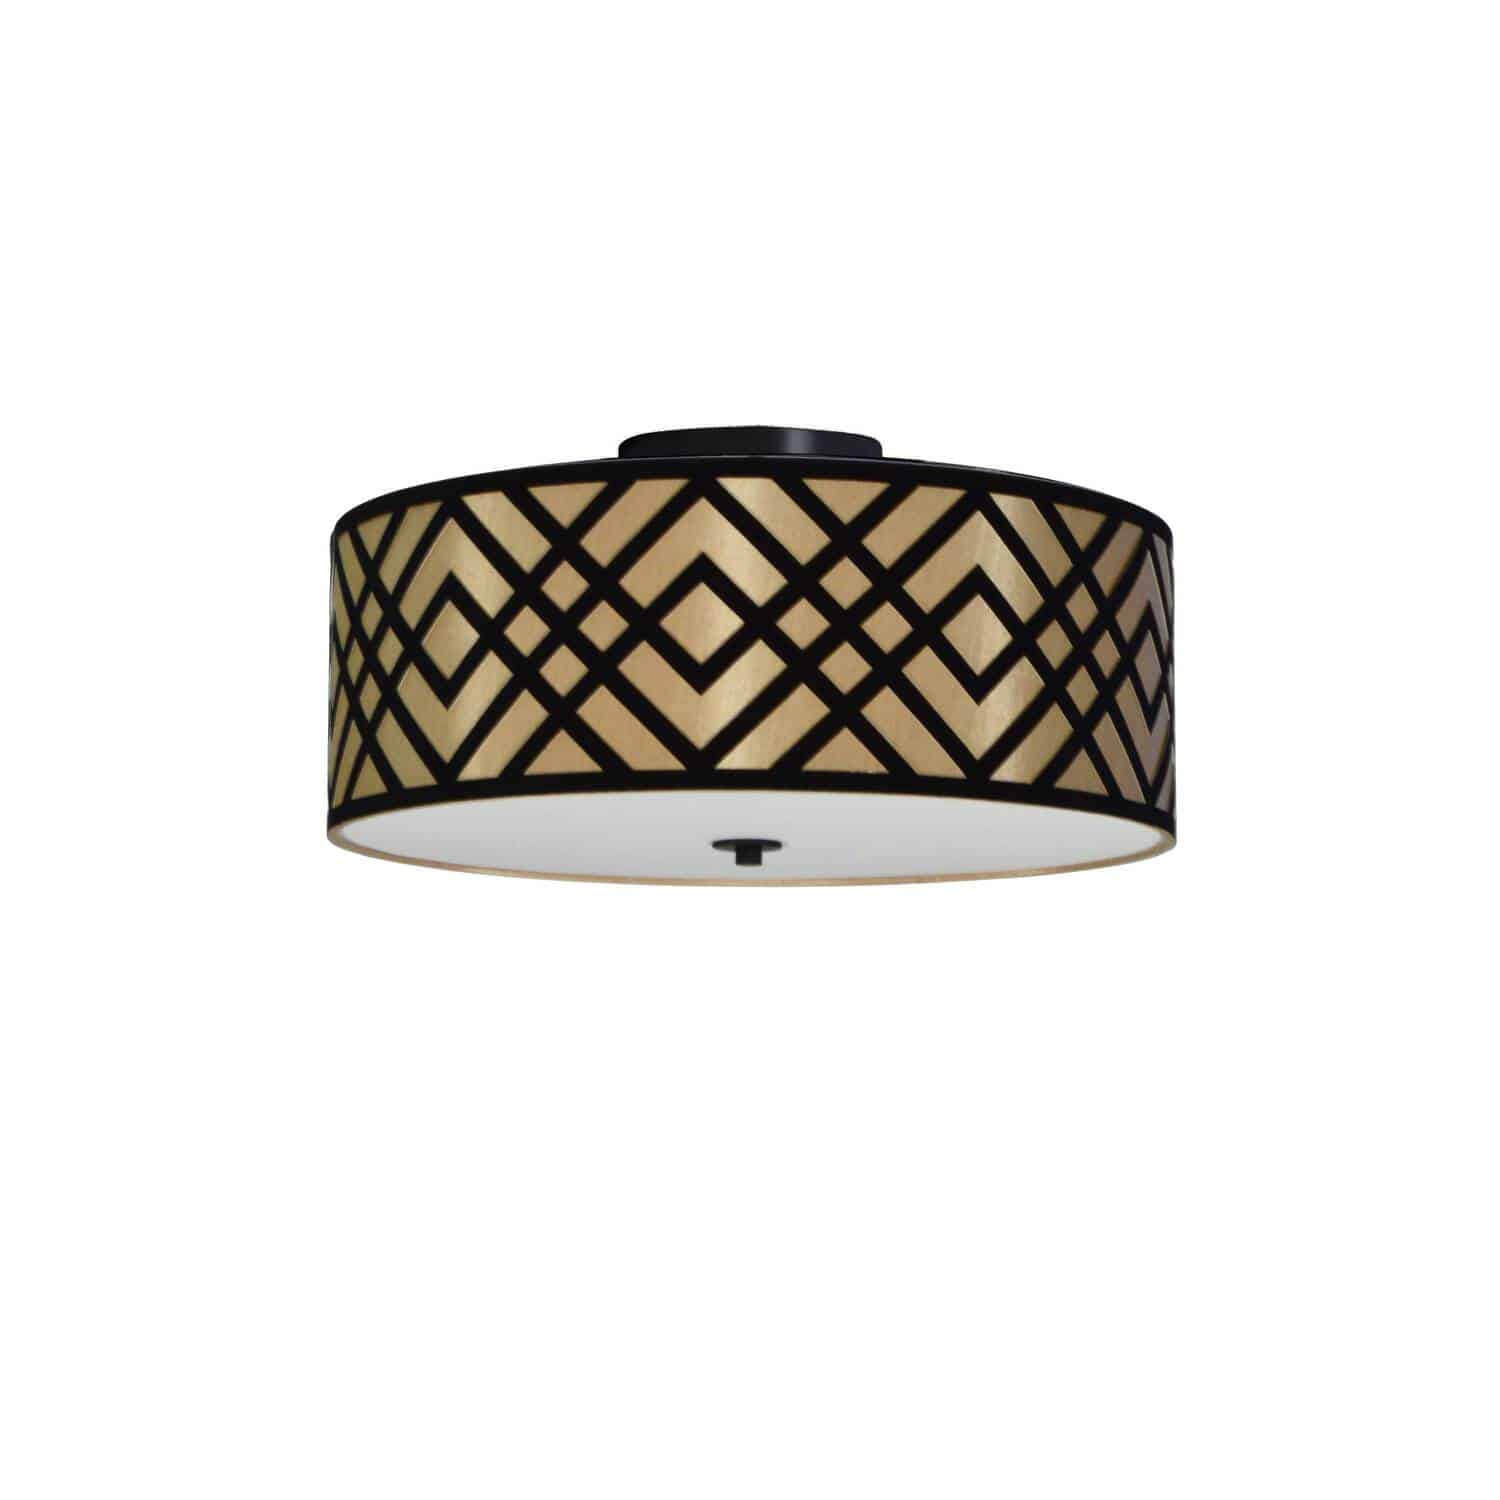 3 Light Flushmount, Polished Chrome Finish, Black/Gold Shade